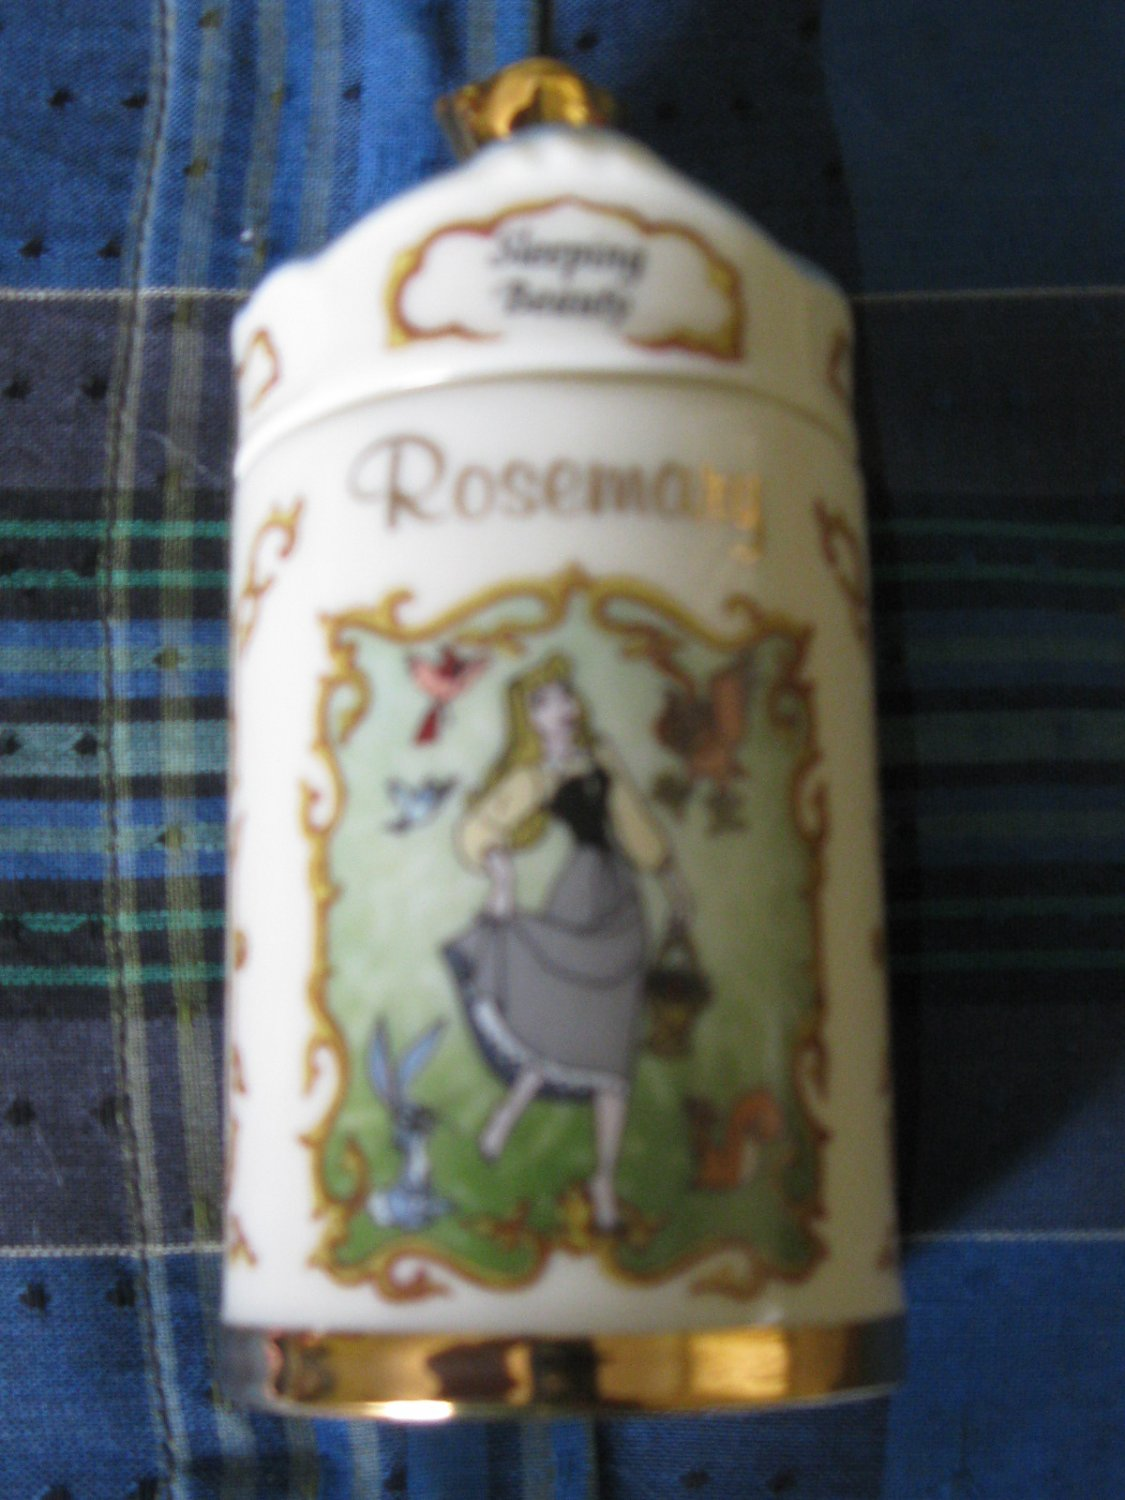 Awesome Disney Sleeping Beauty Rosemary Spice Jar Lenox 1995 Collection